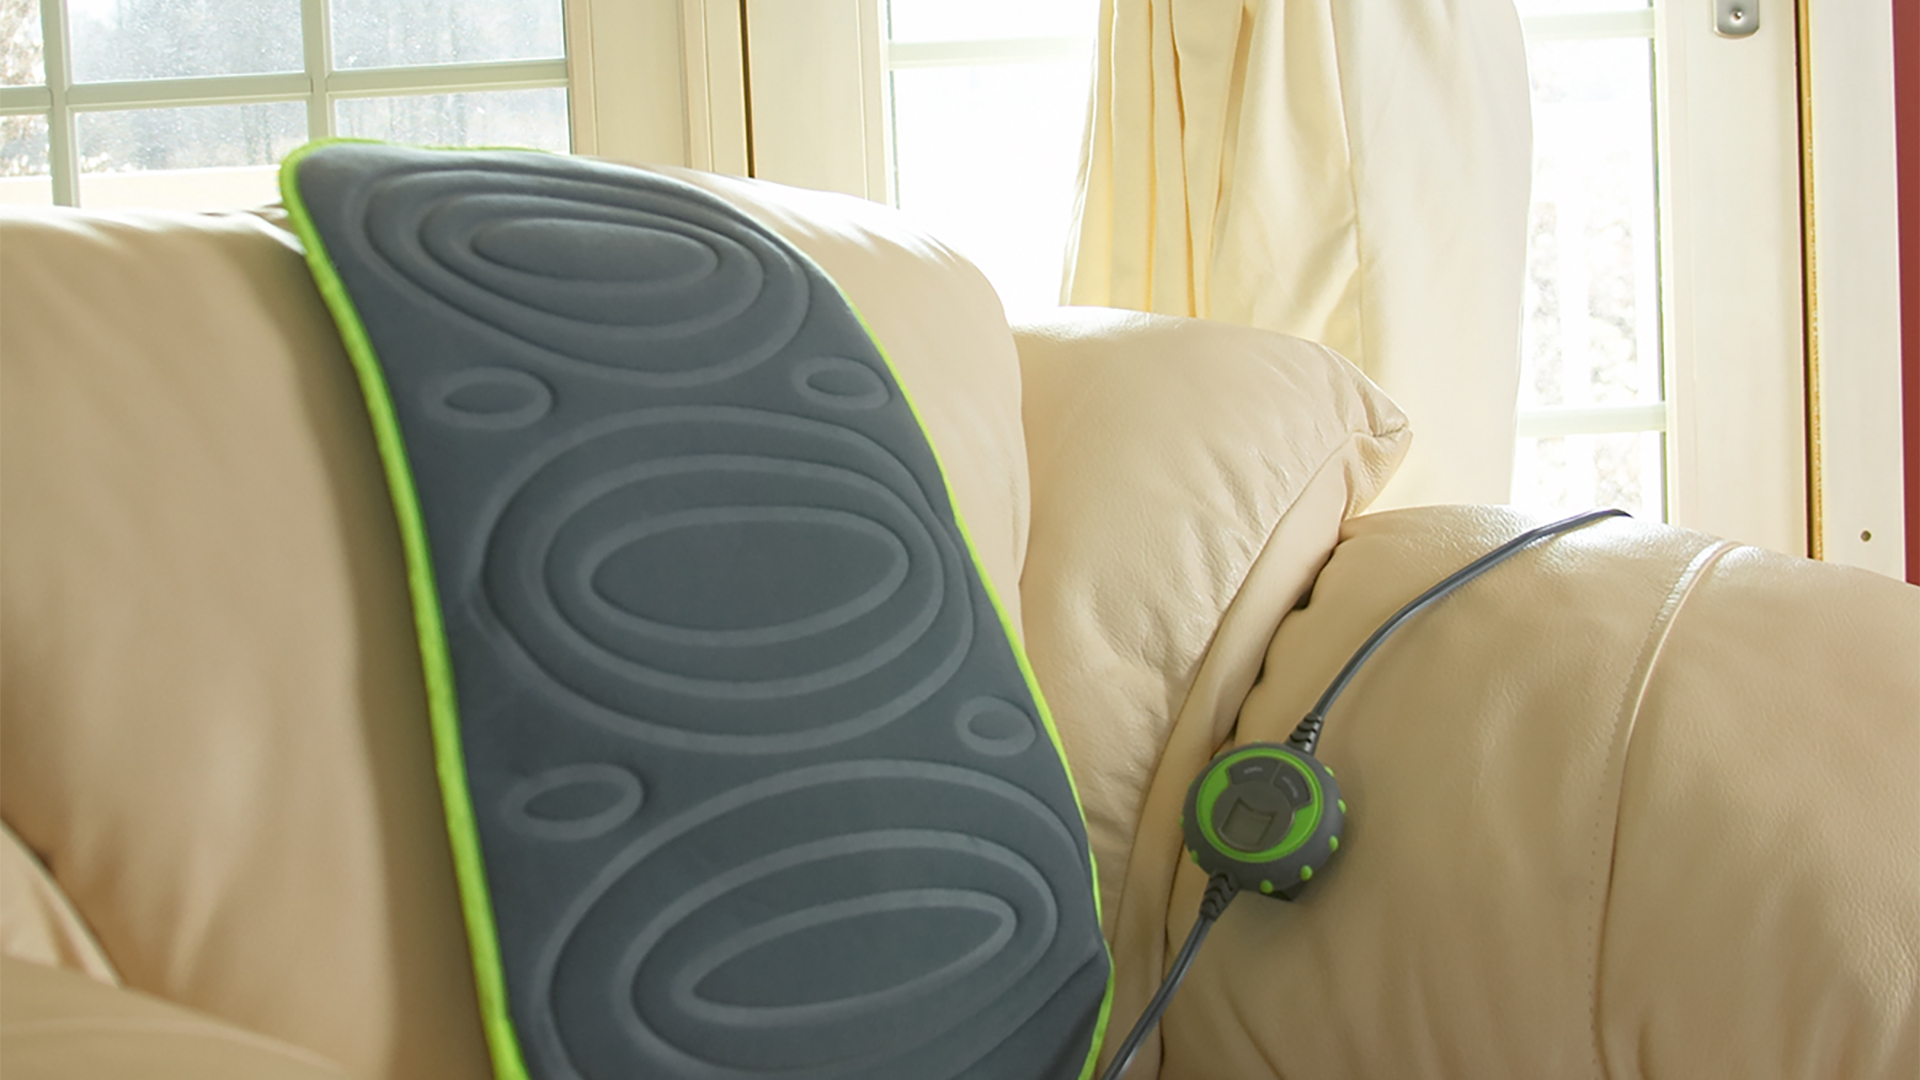 priority_designs_heating_pad_home_therapy_product_design_and_engineering_002